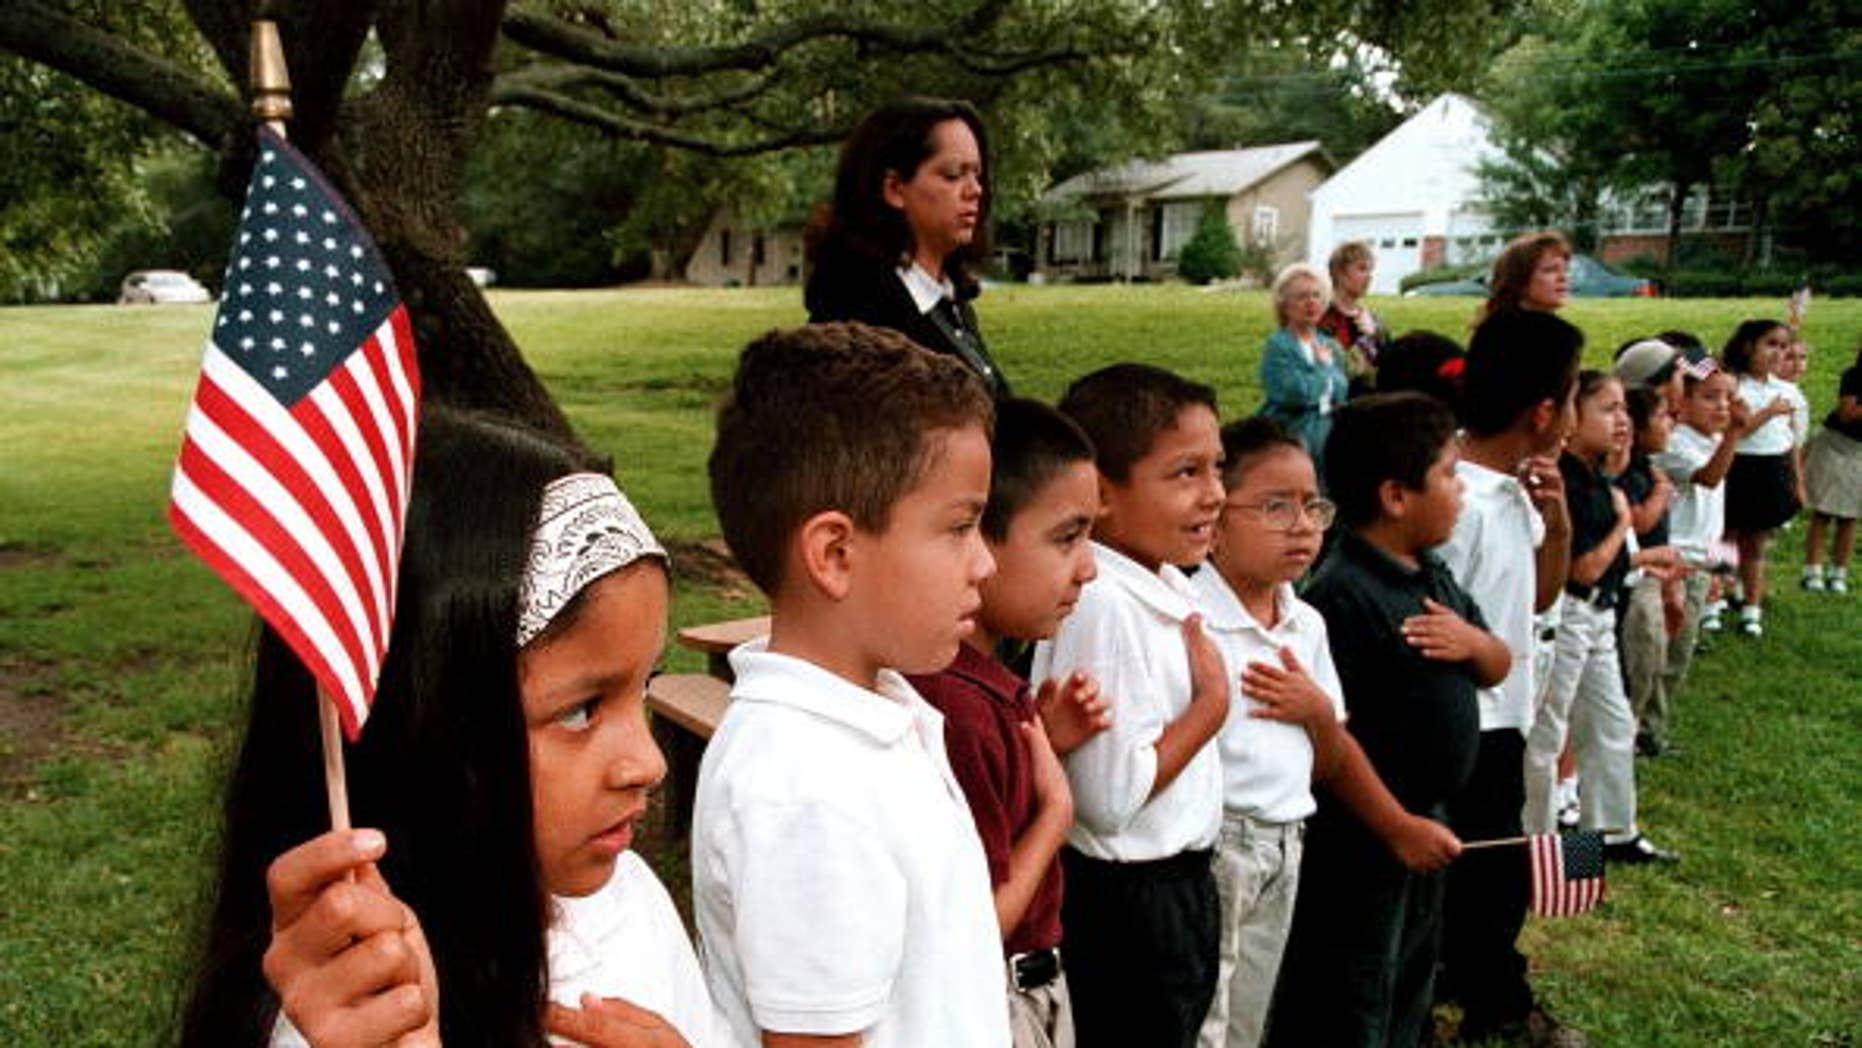 TYLER,TX - SEPTEMBER 11:  A class of Hispanic students recites the Pledge of Allegiance during a September 11 memorial service at Birdwell Elementary School September 11, 2003 in Tyler, Texas. Birdwell has a student body of 600 youngsters, with 60 percent of them being Hispanic. Among the other schools in the Tyler Independent School District, 30 percent of the 17,550 students are Hispanic, according to school district administrators.  (Photo by Mario Villafuerte/Getty Images)